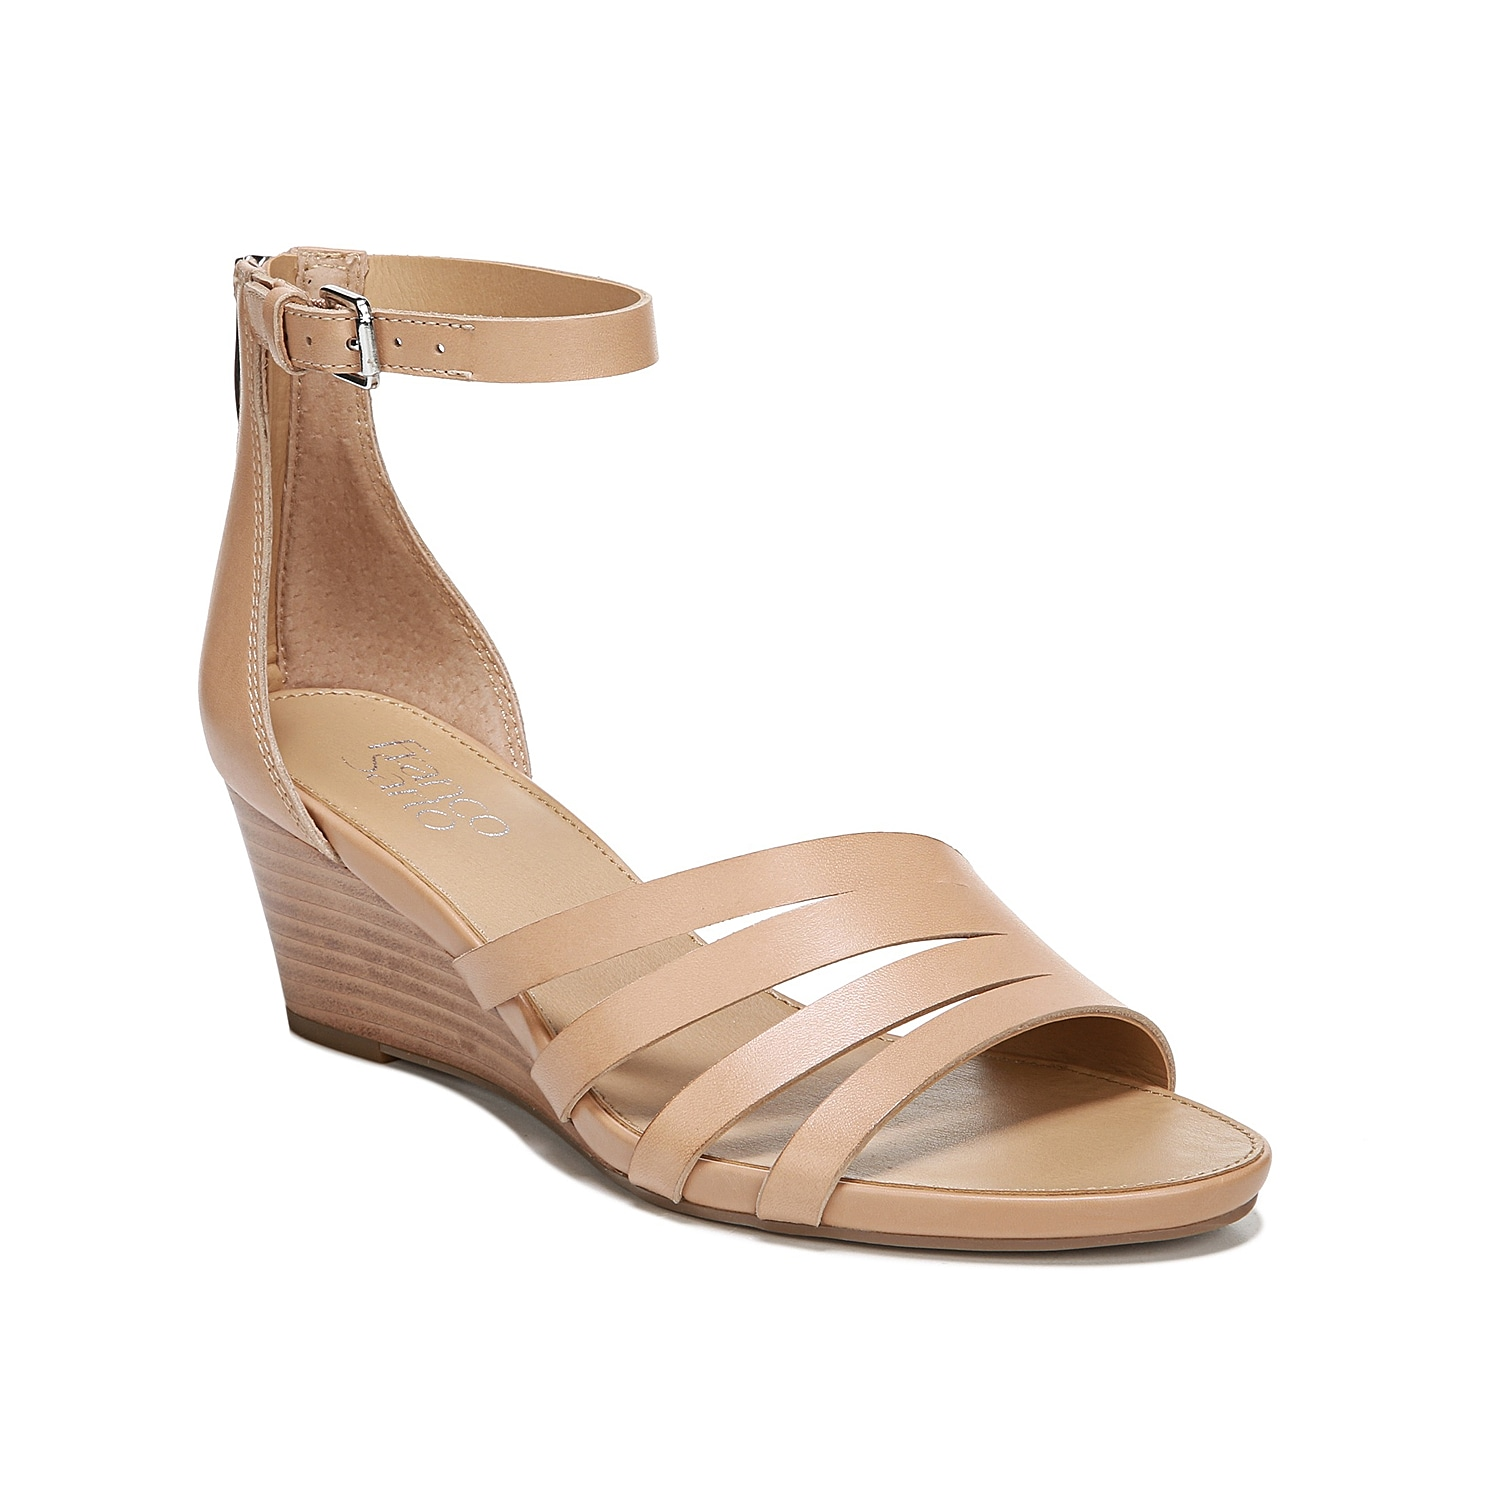 Keep it classic with the Dutch sandal from Franco Sarto. This two-piece pair is fashioned with strappy accents and a wedge heel that will stand out when worn with light wash jeans or a vibrant sundress.